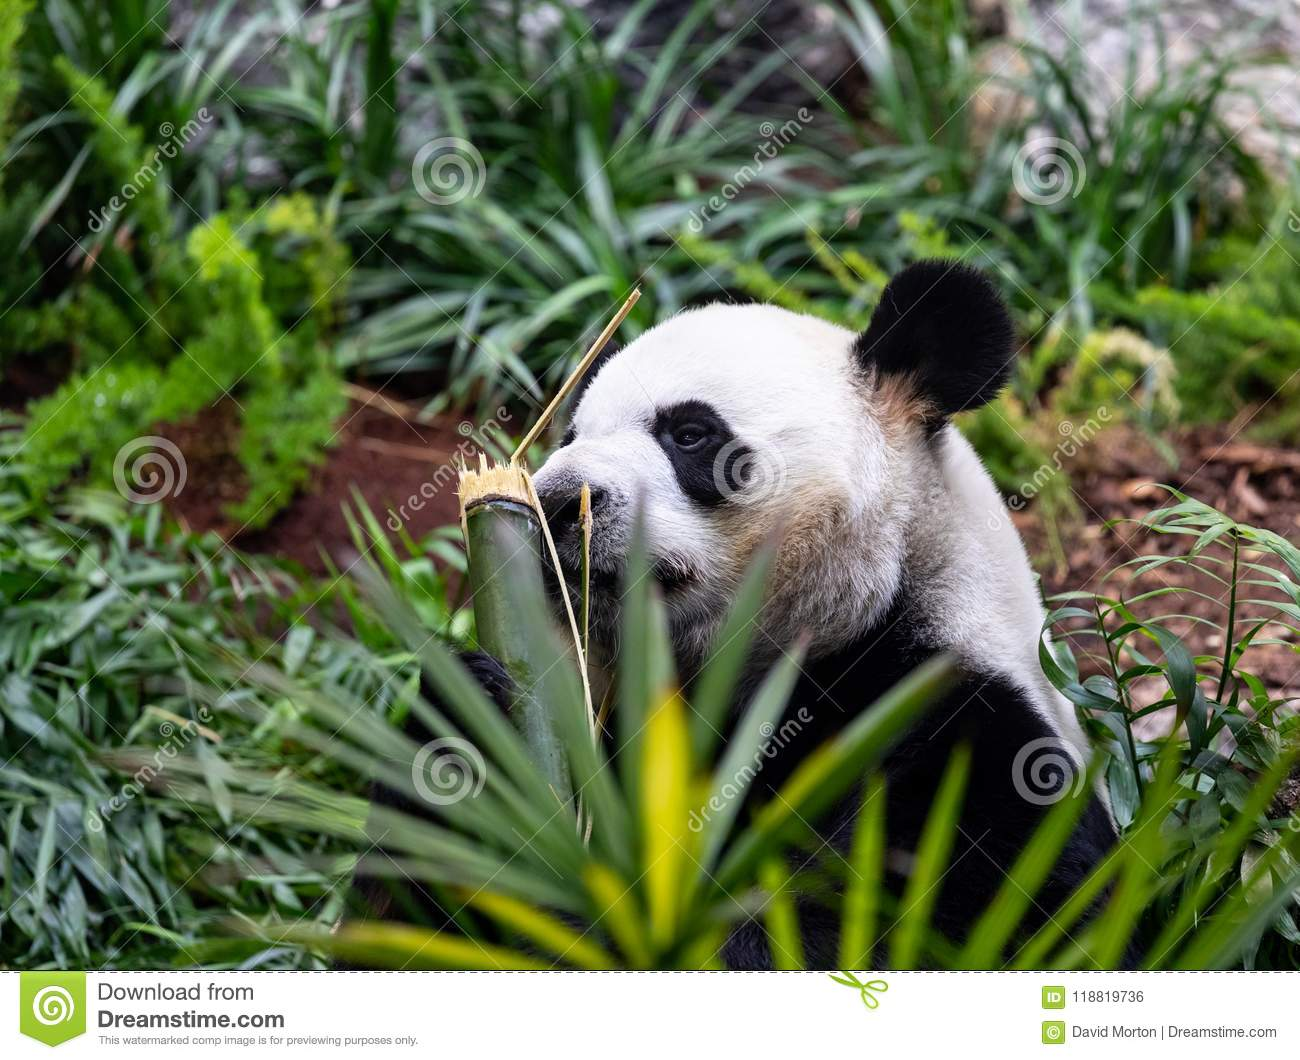 hight resolution of calgary zoo are currently home to a group of giant pandas on loan from china as part of a breeding programme